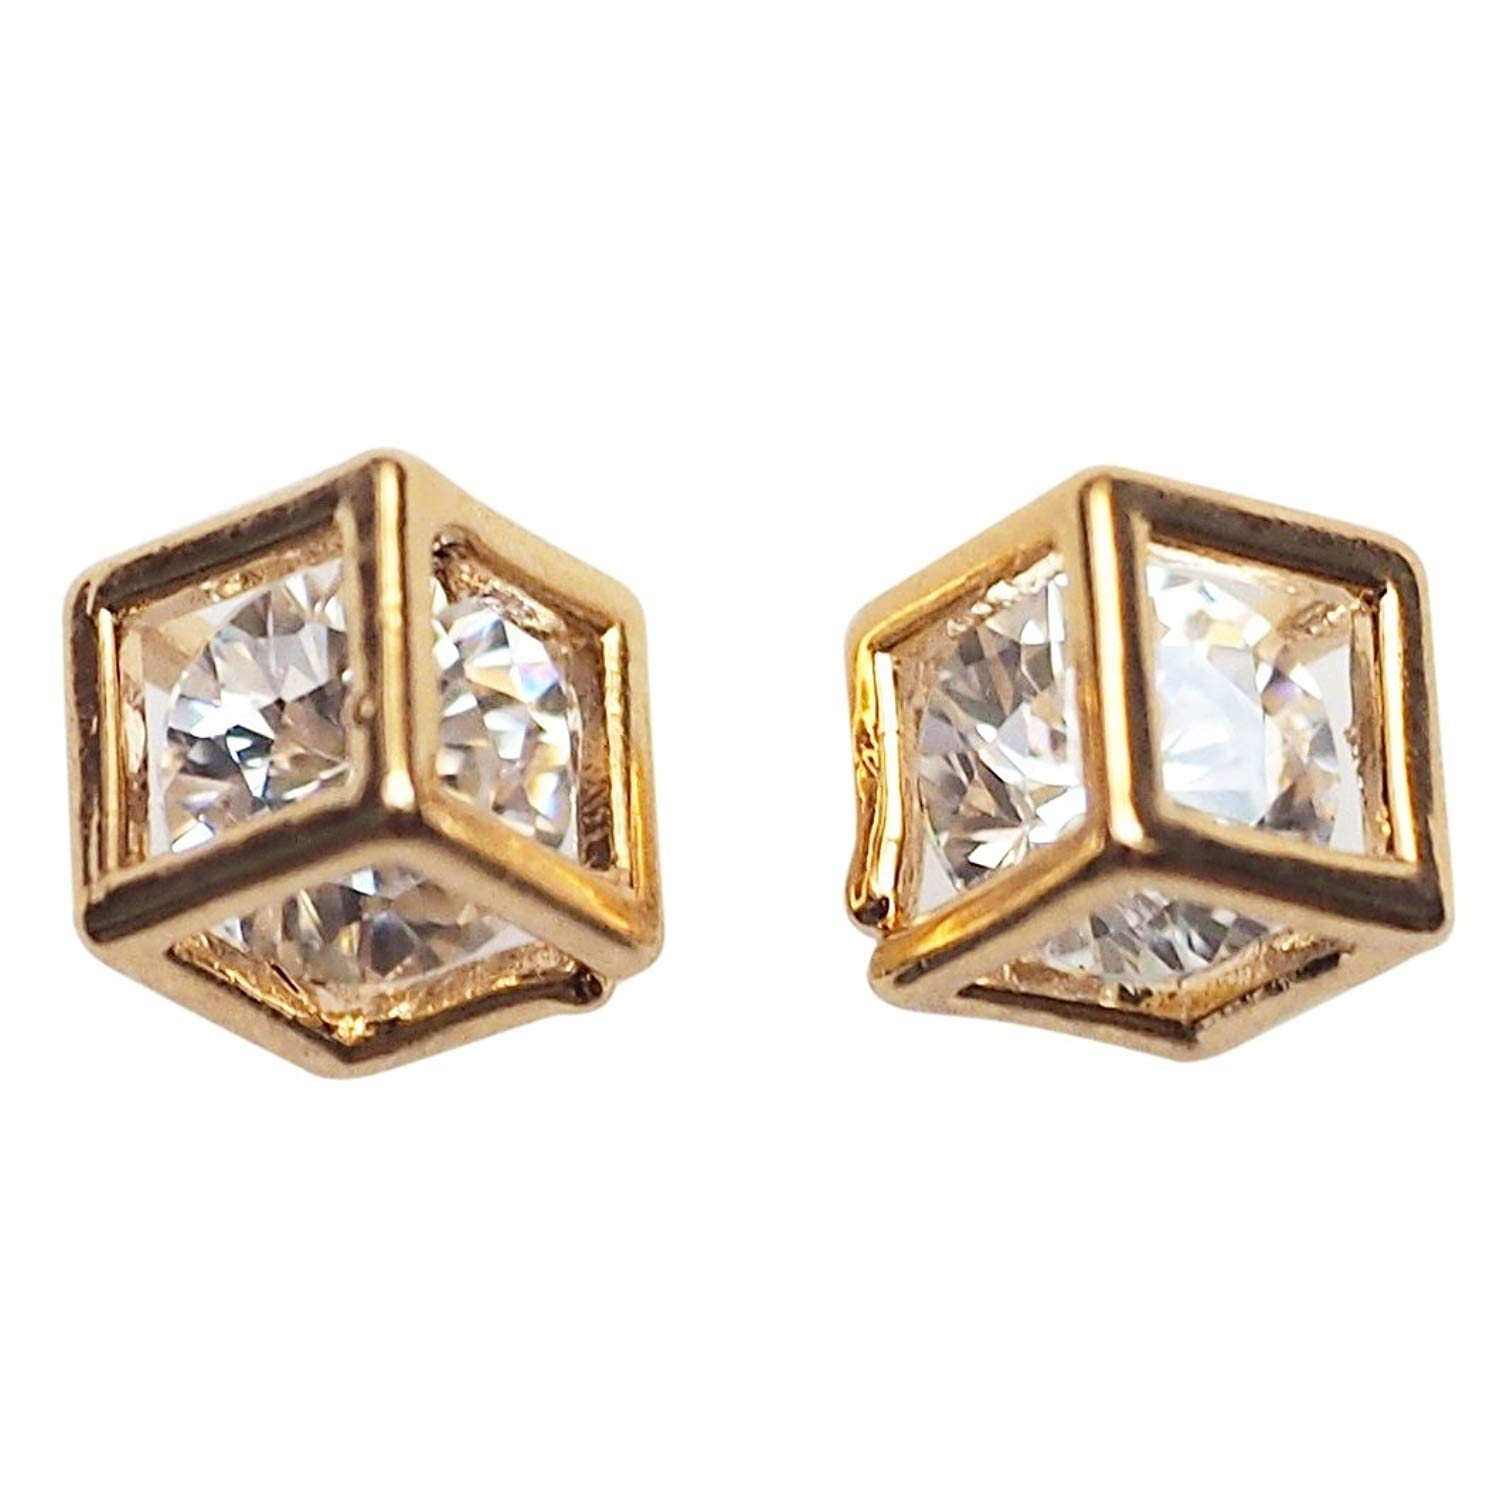 Miyabi Grace Women's Comfortable Stylish Cube Simple Cubic Zirconia Crystal Invisible Clip On Stud Earrings Gold tone